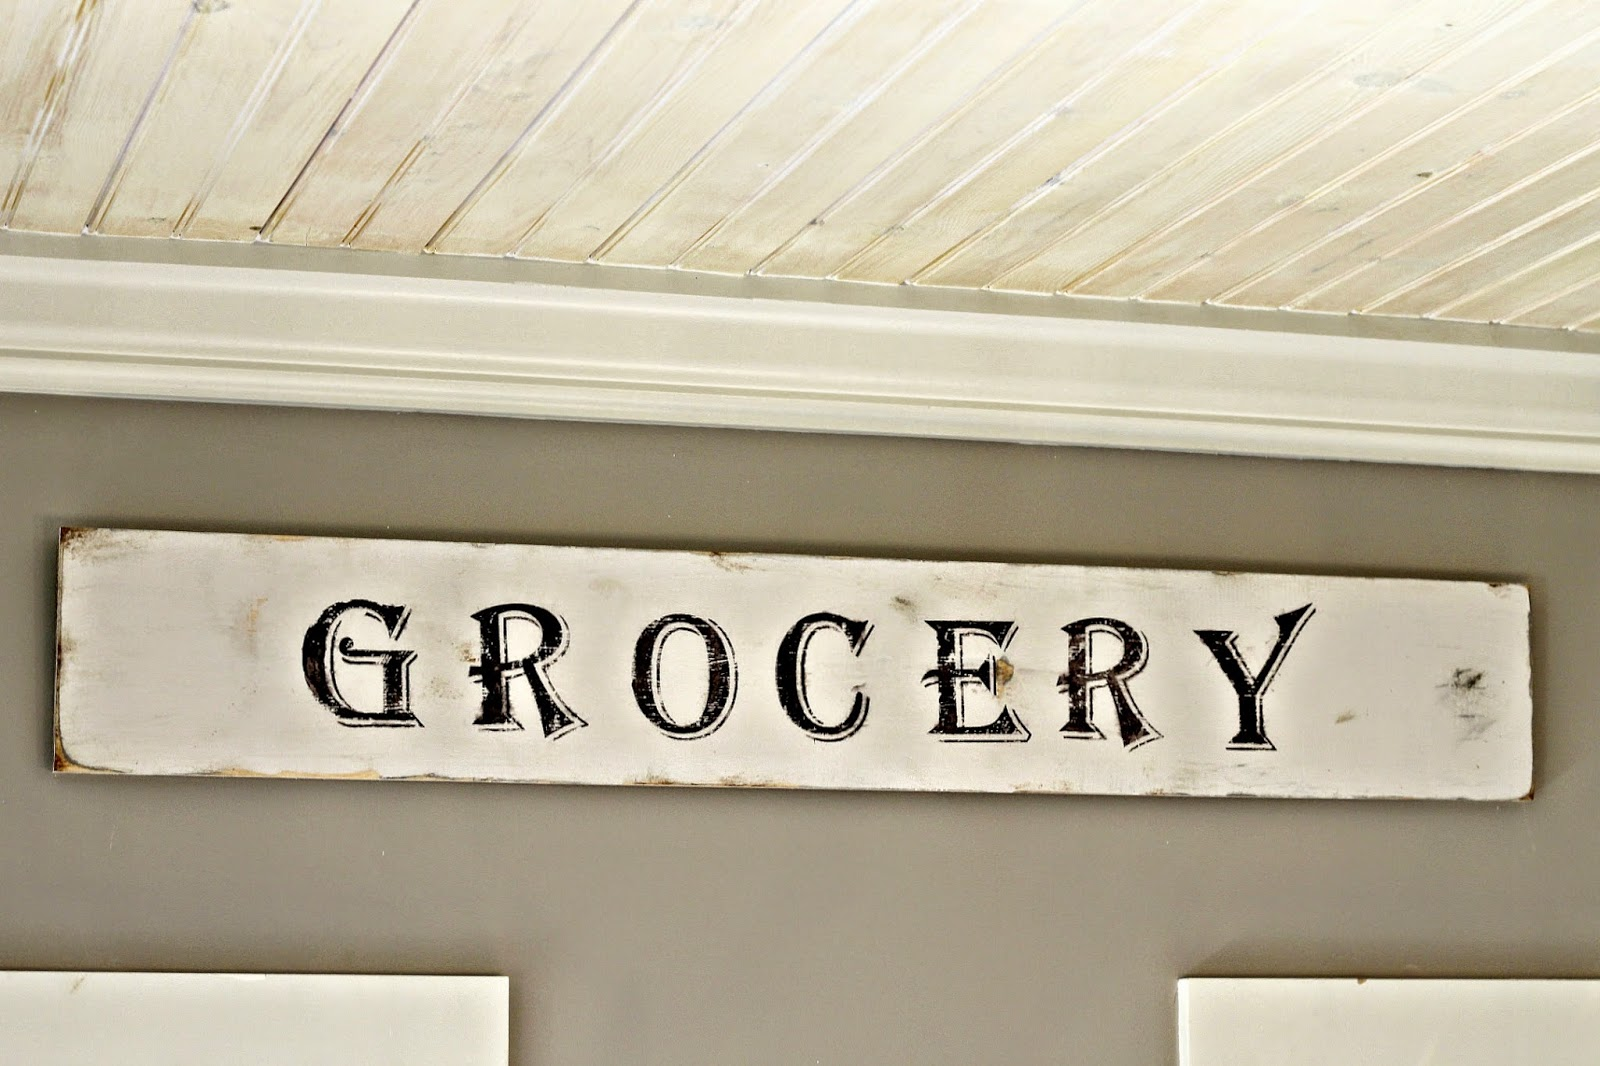 Fixer upper kitchen signs - I M Also Craving My Black White Grey Colors With Fall Around The Corner Yesterday I Picked Up Another Plastic Pumpkin To Paint And Add To My Grey Grouping